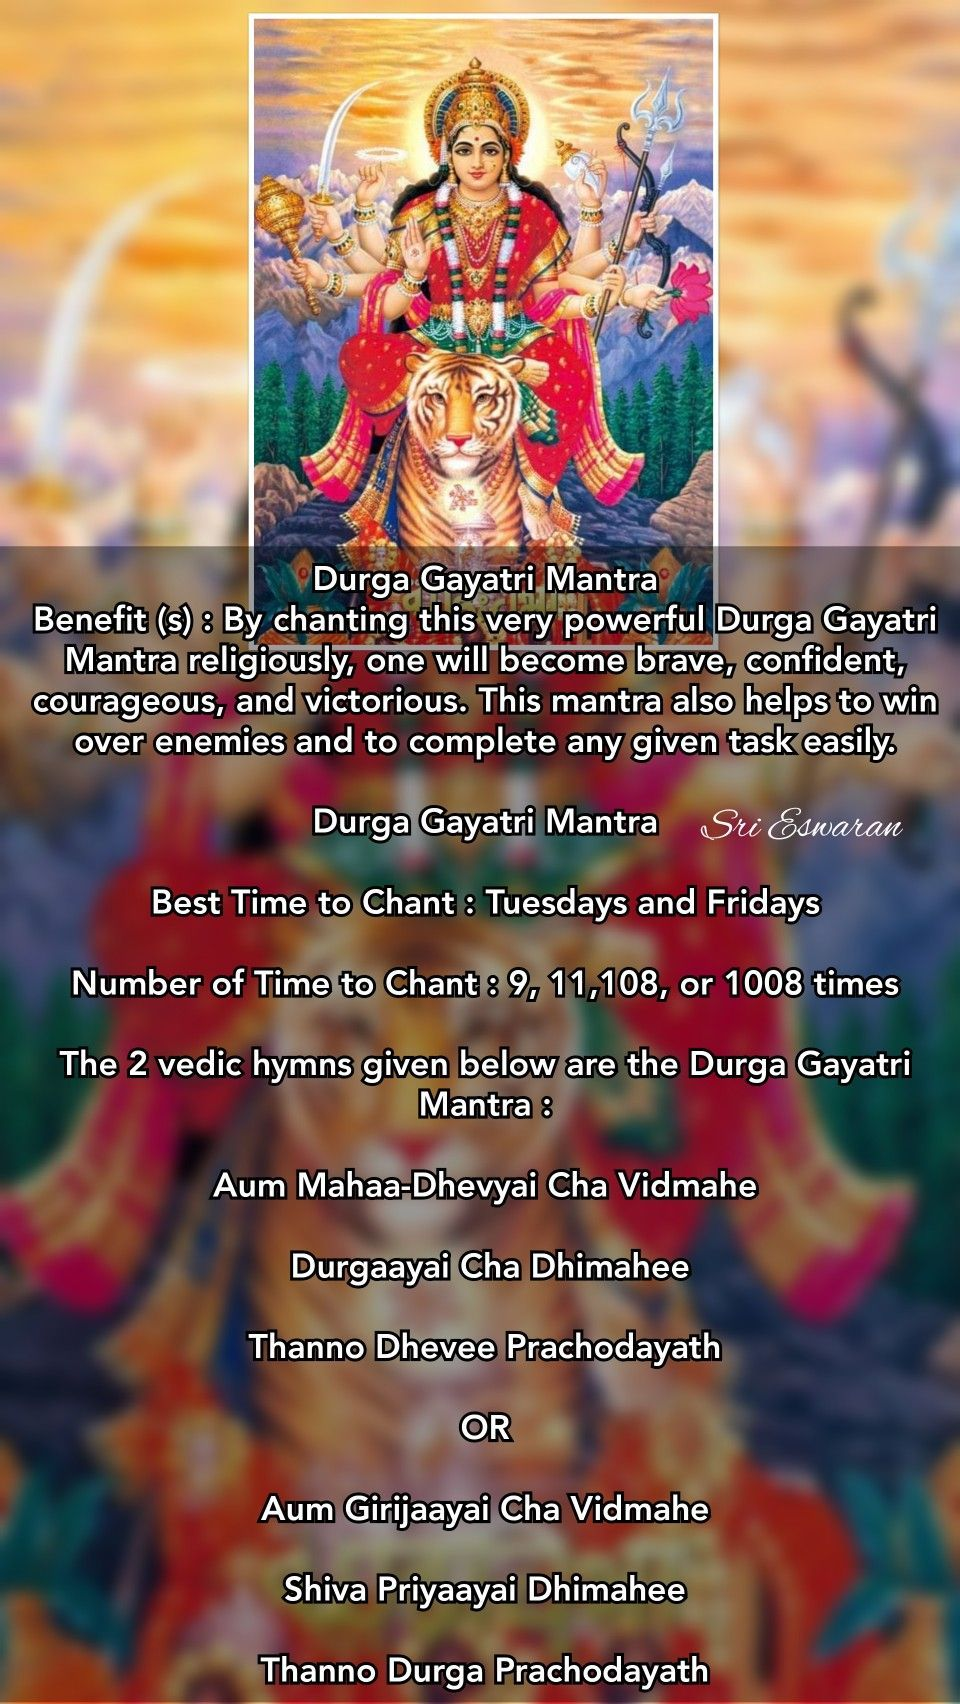 Durga Gayatri Mantra Benefit (s) : By chanting this very